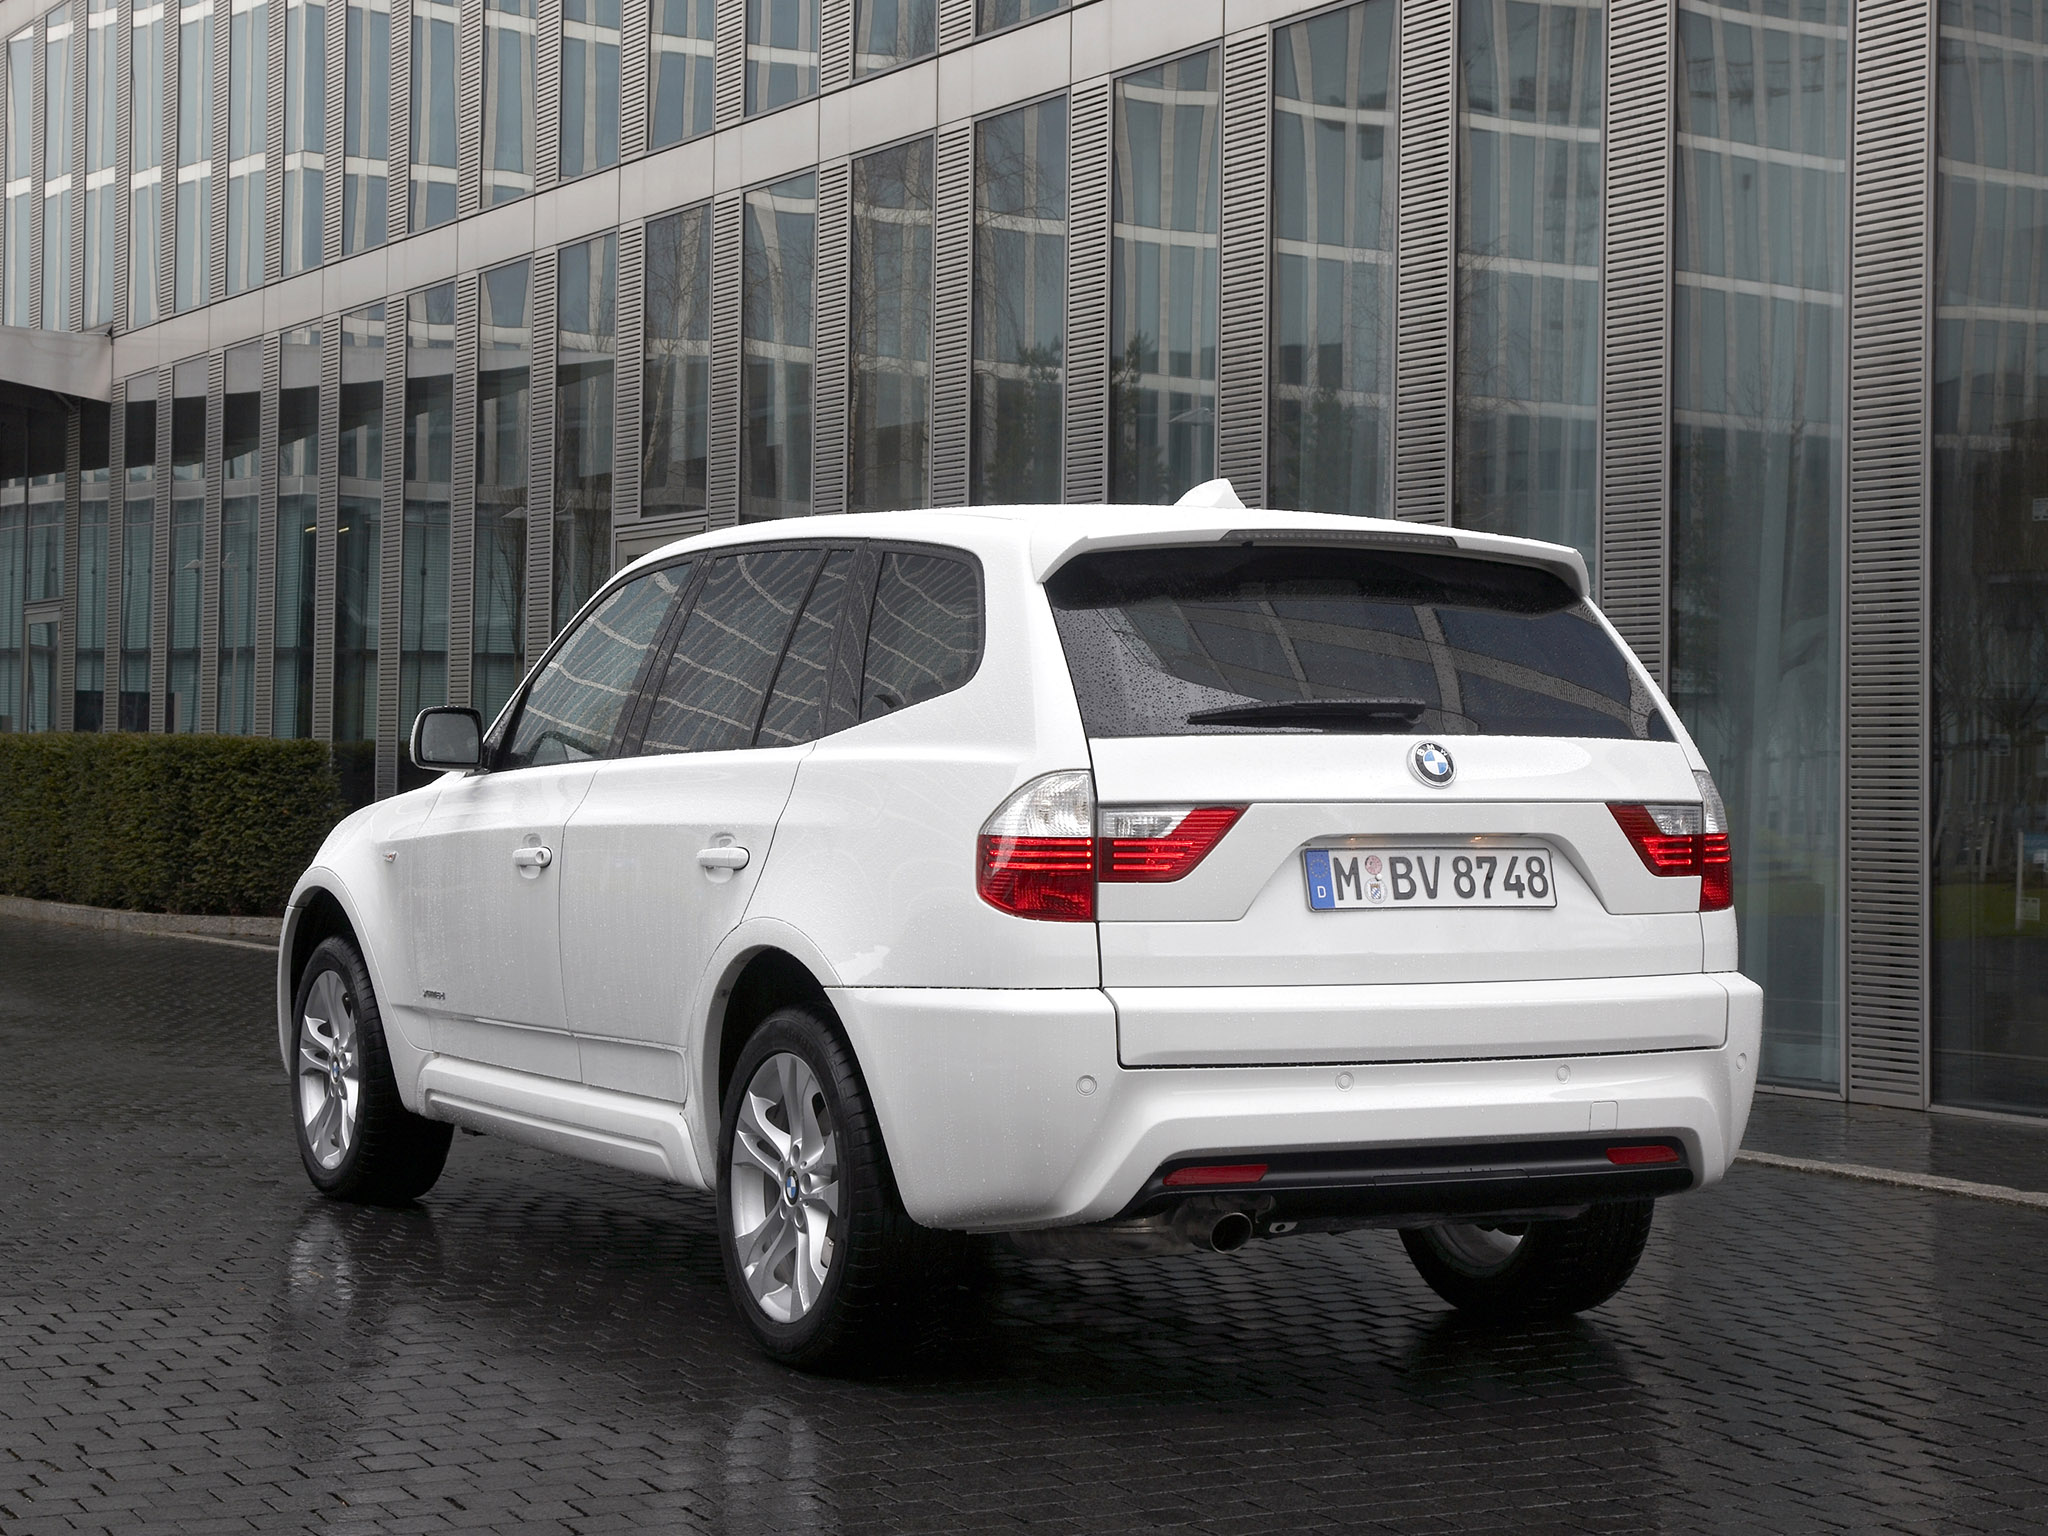 bmw x3 xdrive e83 2009 bmw x3 xdrive e83 2009 photo 16 car in pictures car photo gallery. Black Bedroom Furniture Sets. Home Design Ideas